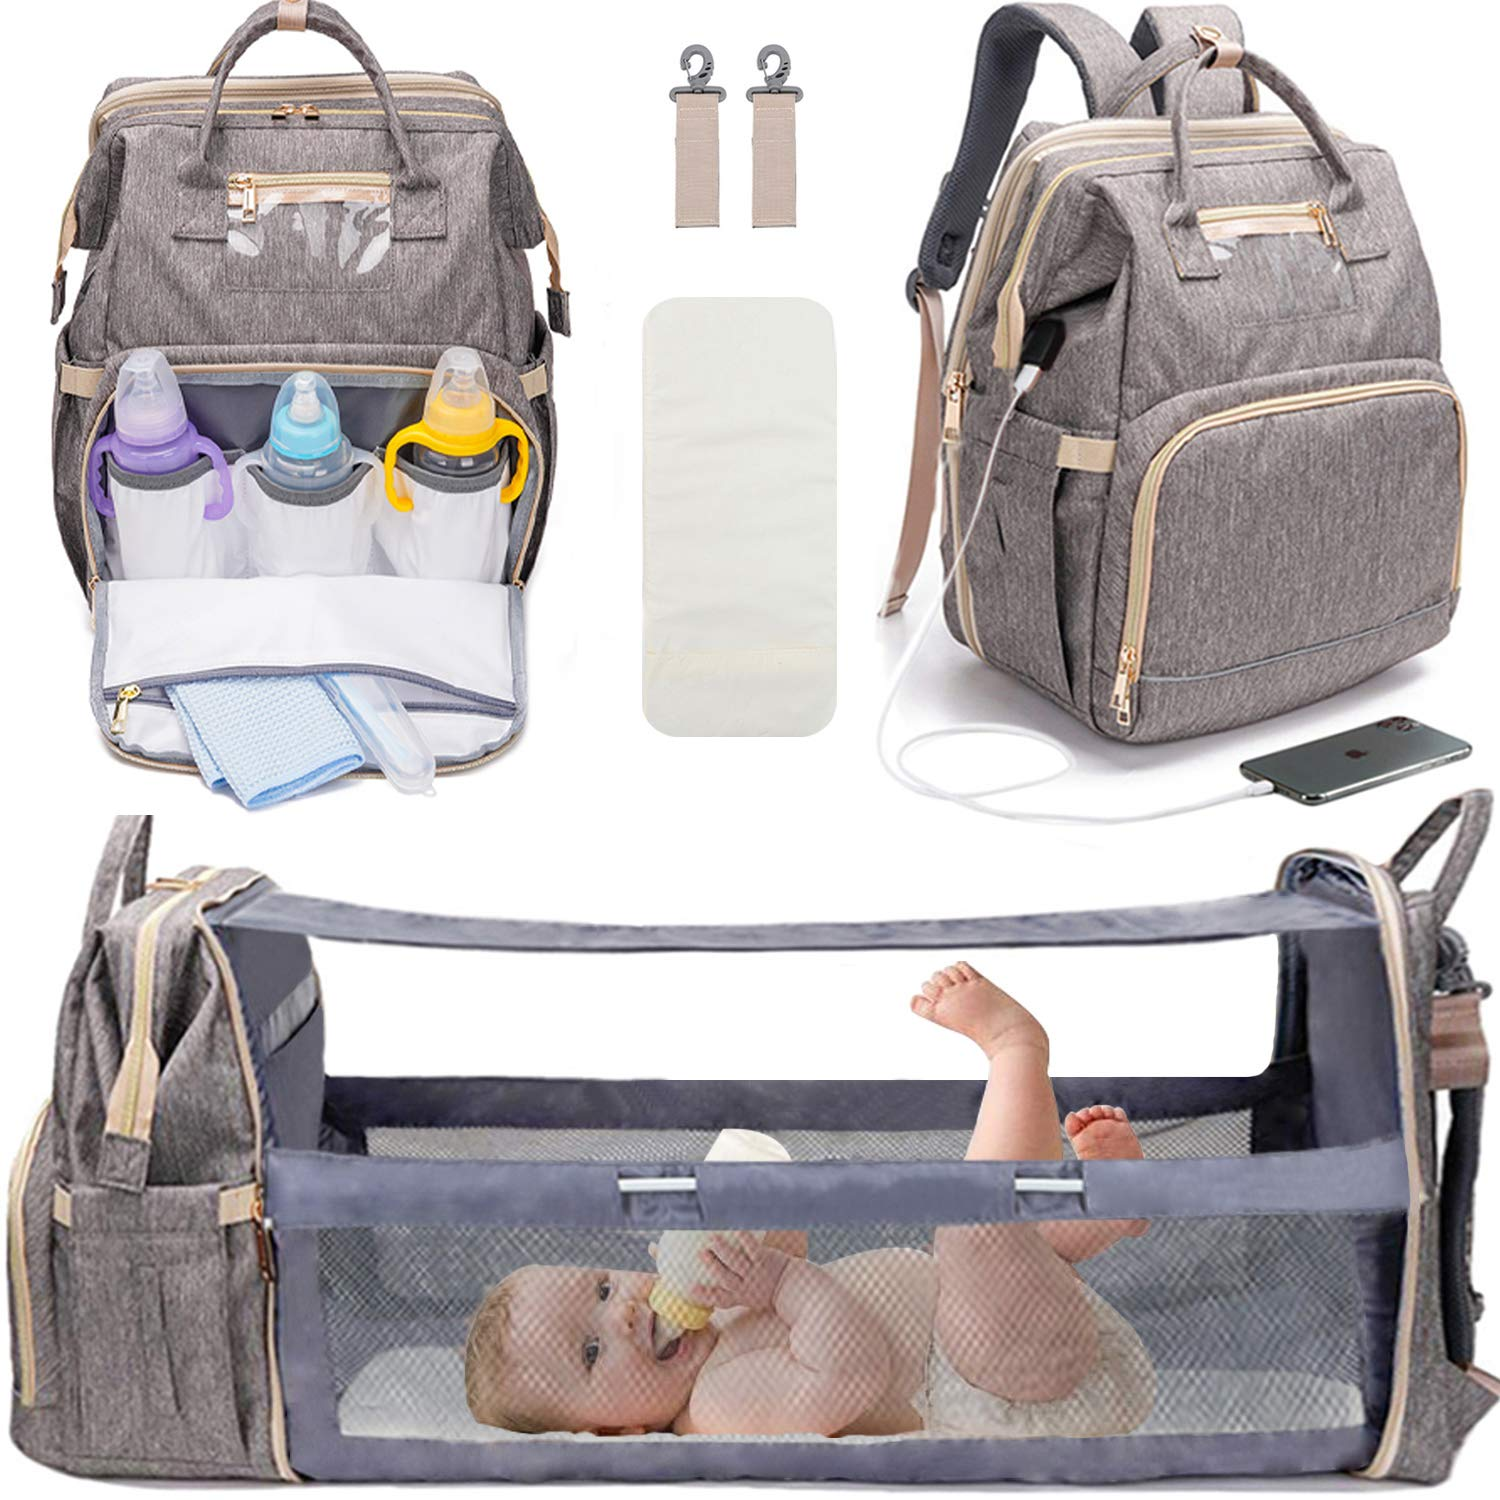 3 in 1 Travel Bassinet Foldable Baby Bed Baby Nest with Mattress Portable Diaper Changing Station Mummy Bag Backpack Travel Crib Infant Sleeper Portable Bassinets for Baby and Toddler